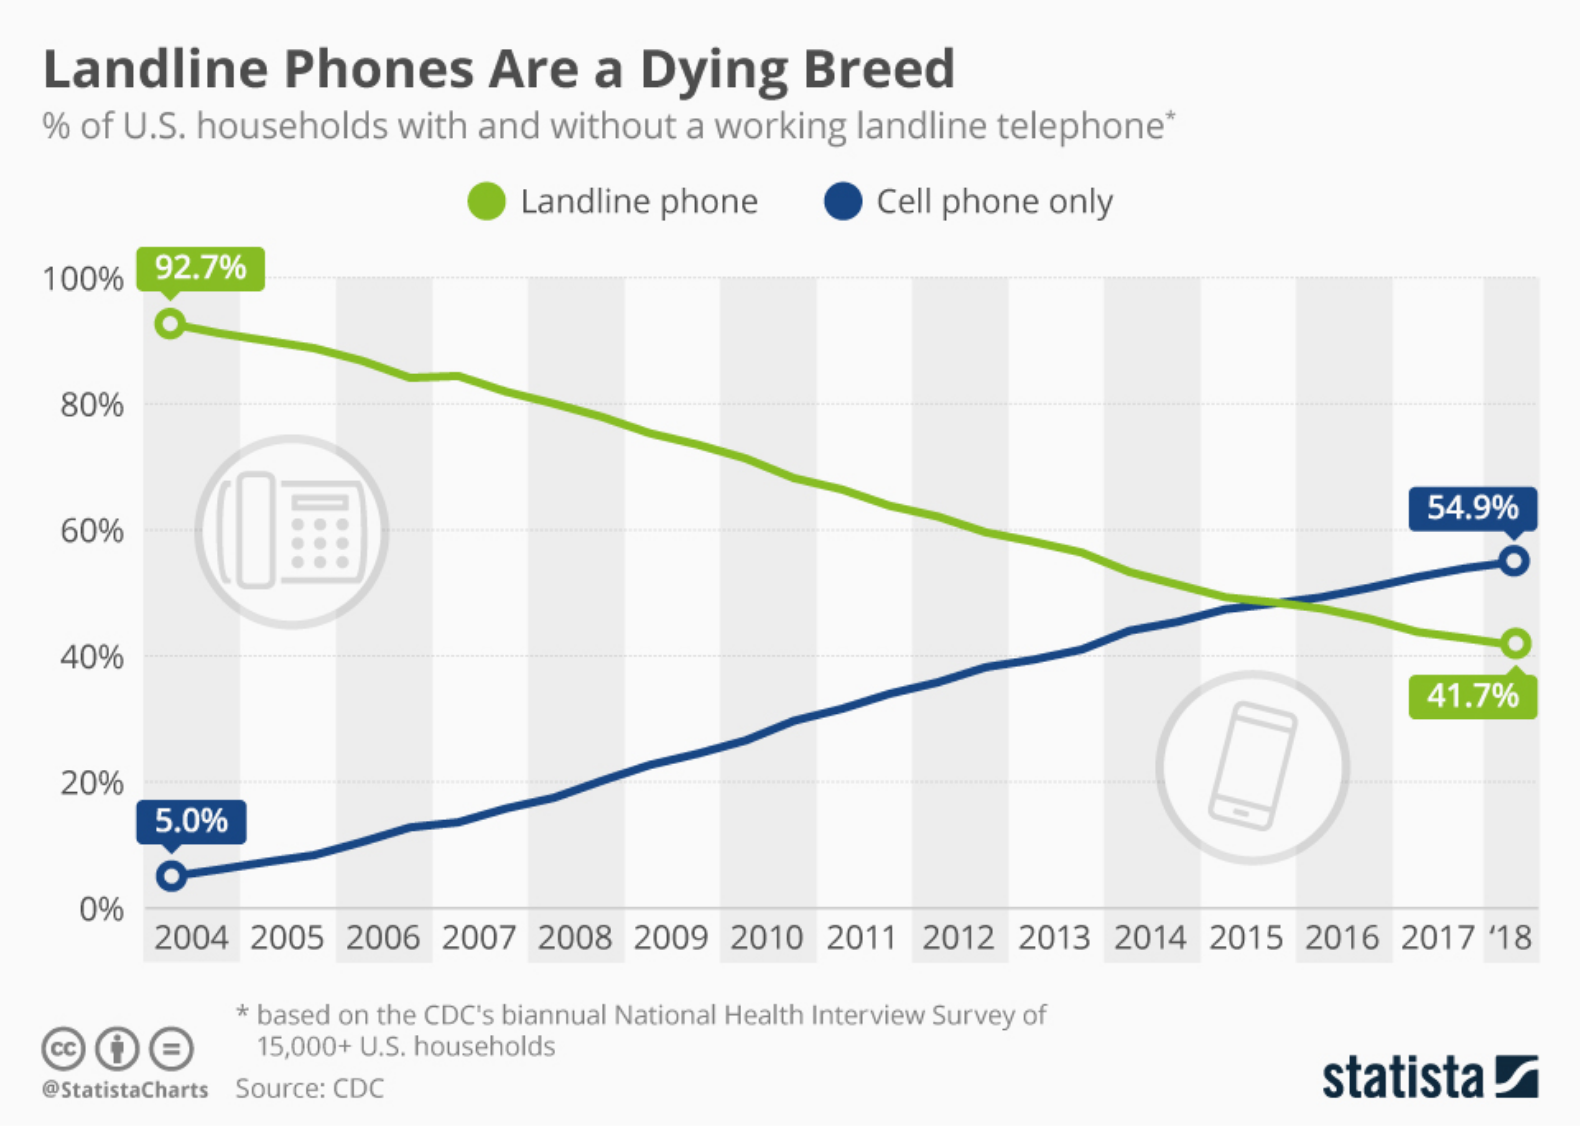 Landline Phones are a dying breed